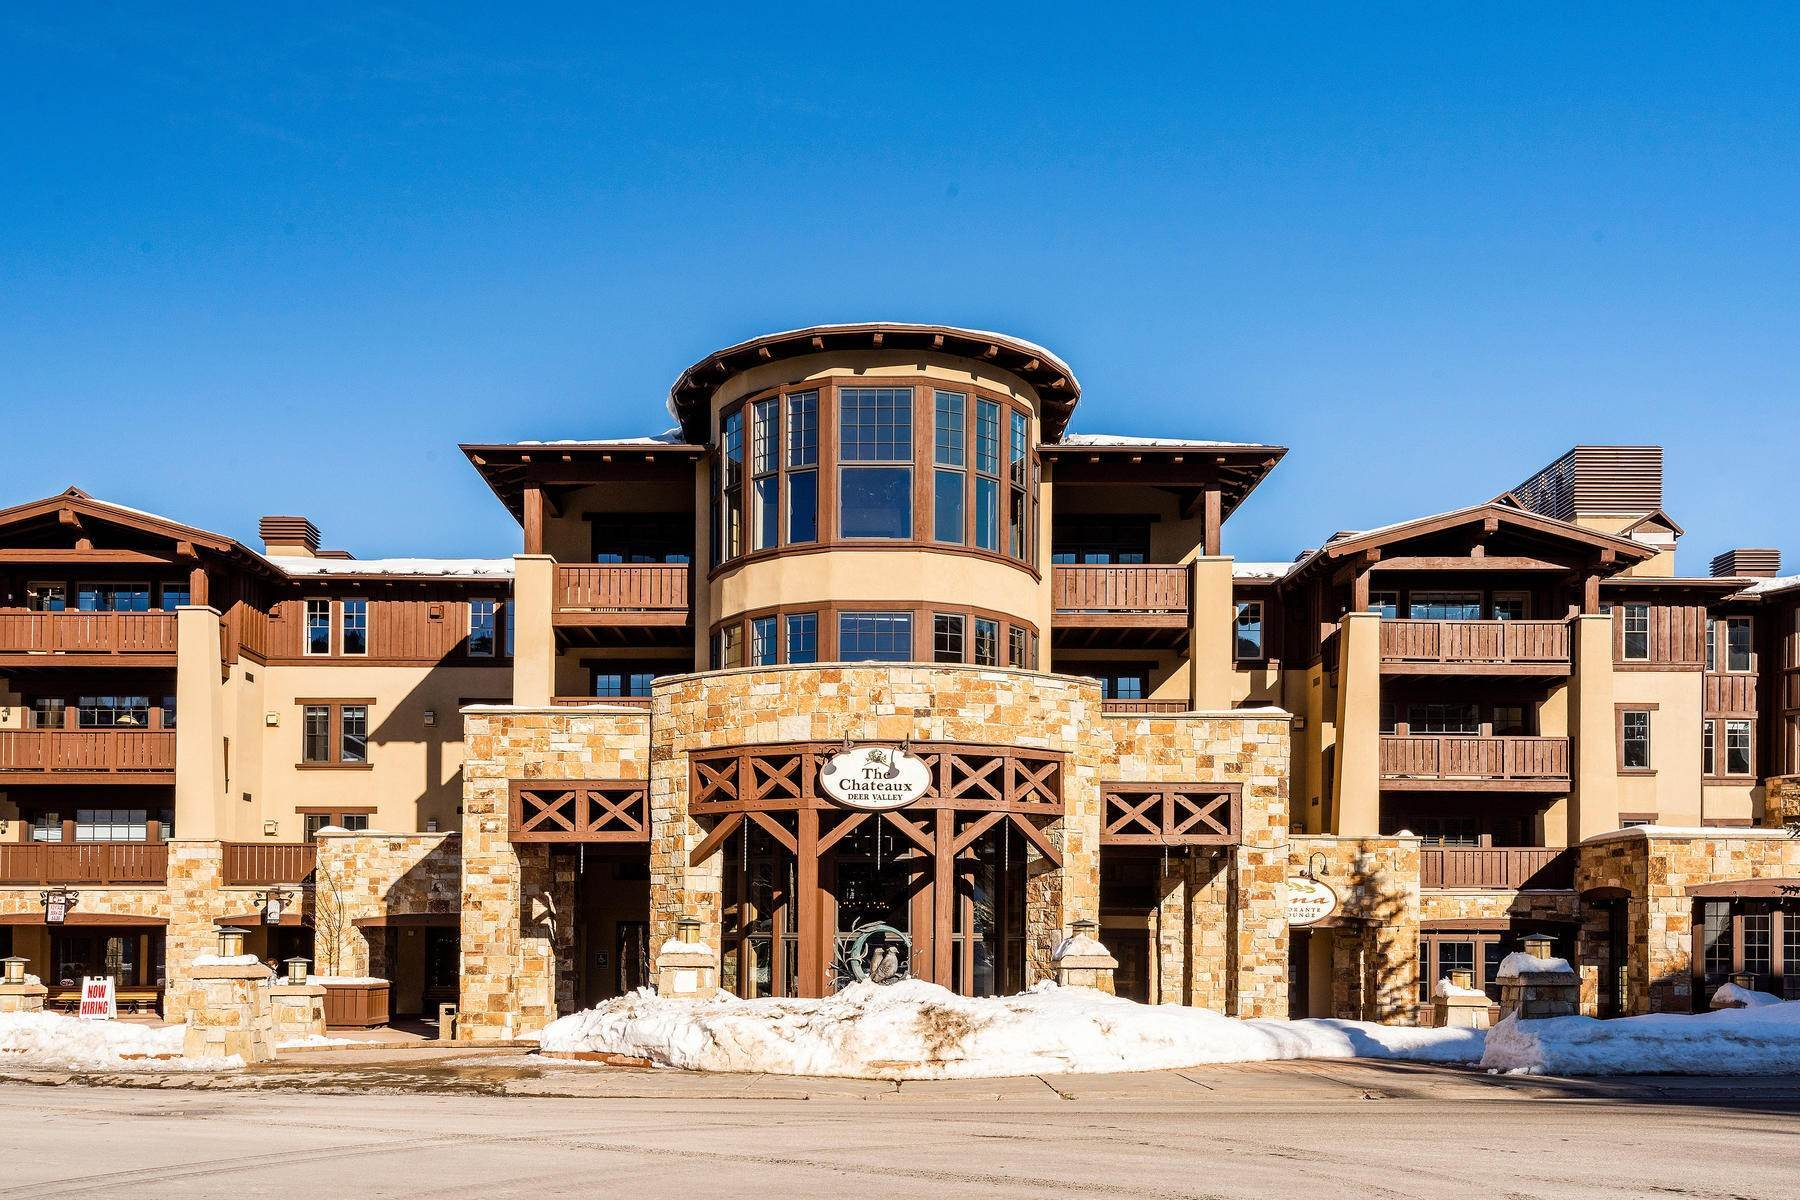 Property for Sale at Silver Lake Village Penthouse with Spectacular Views 7815 Royal St #A-410 Park City, Utah 84060 United States